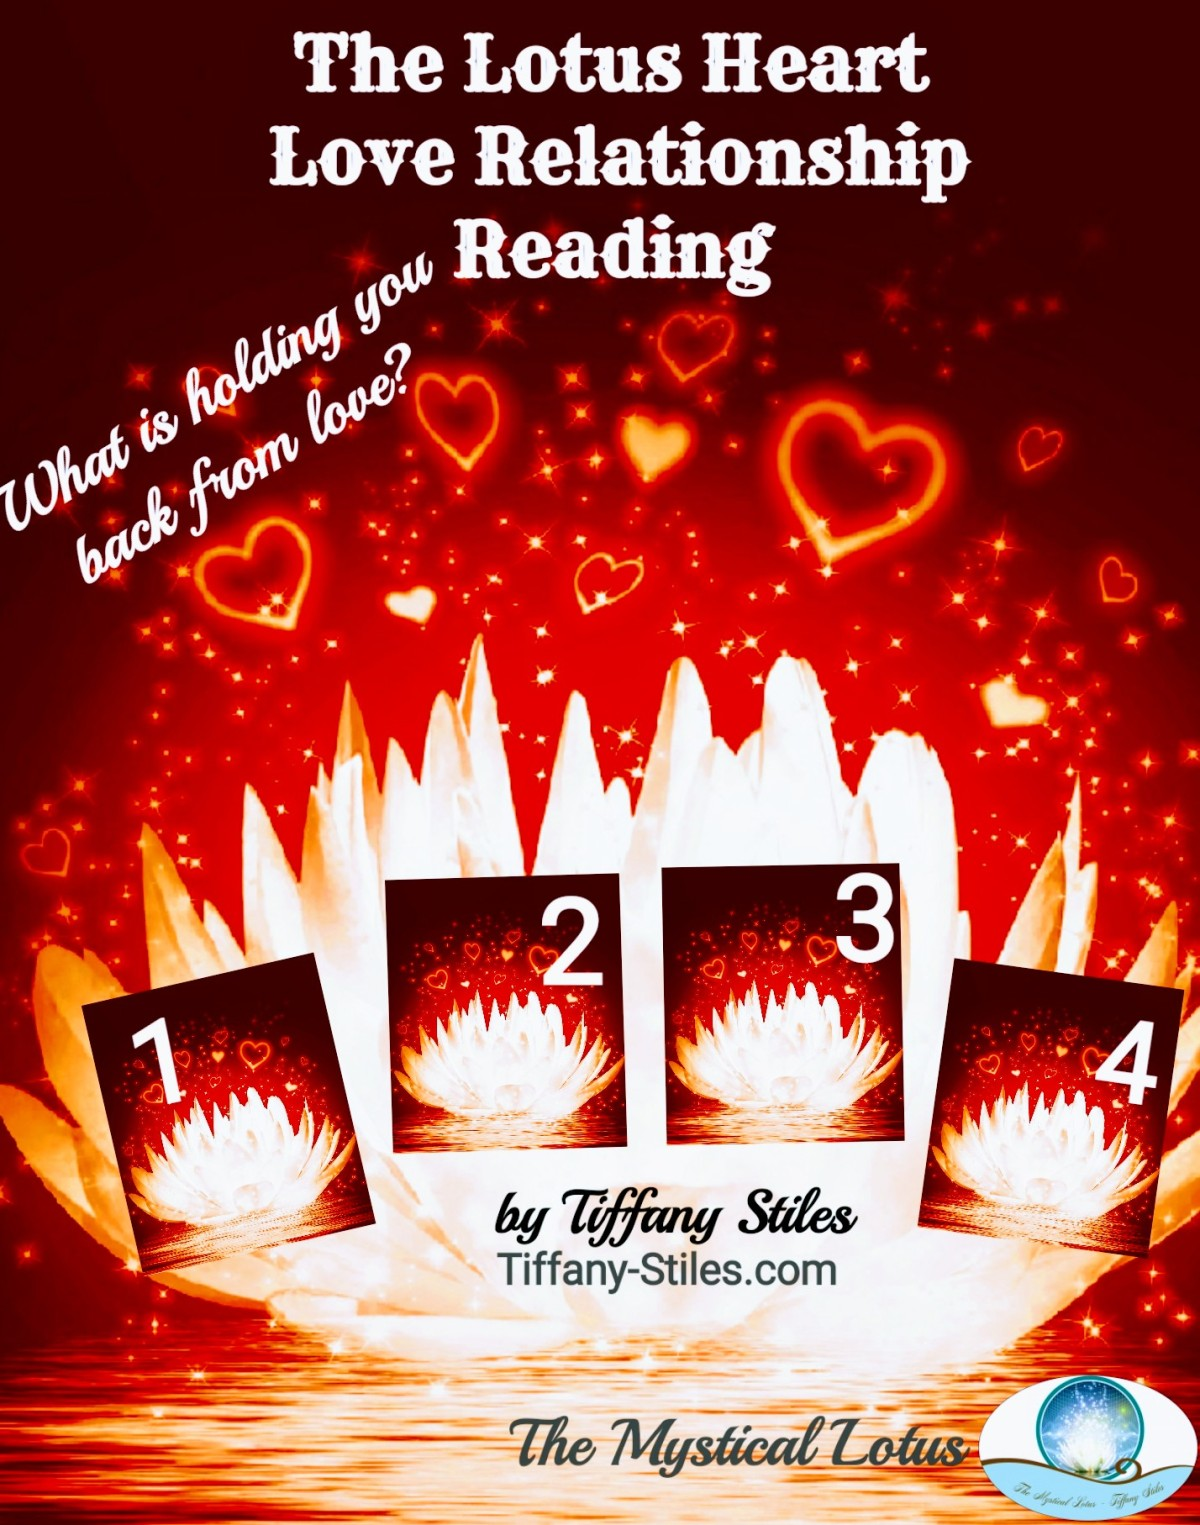 The Lotus Heart Love Relationship Reading. What is holding you back fromlove?